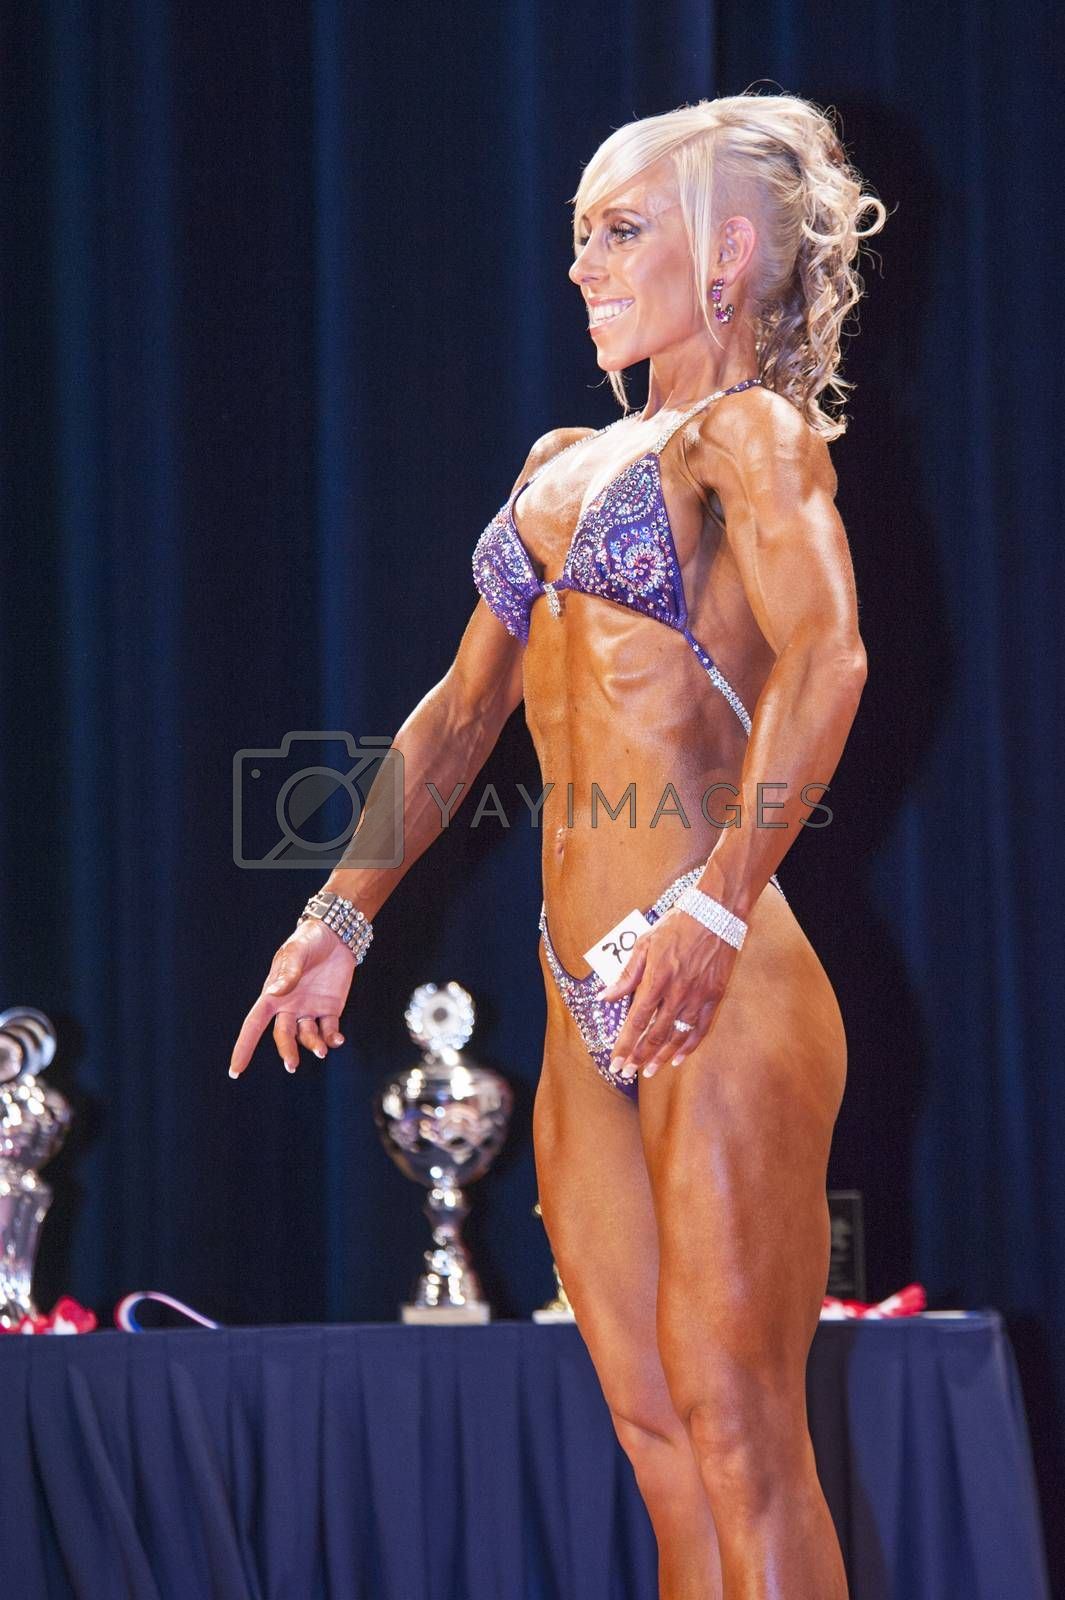 Female bikini contestant shows het best front pose on stage by yellowpaul